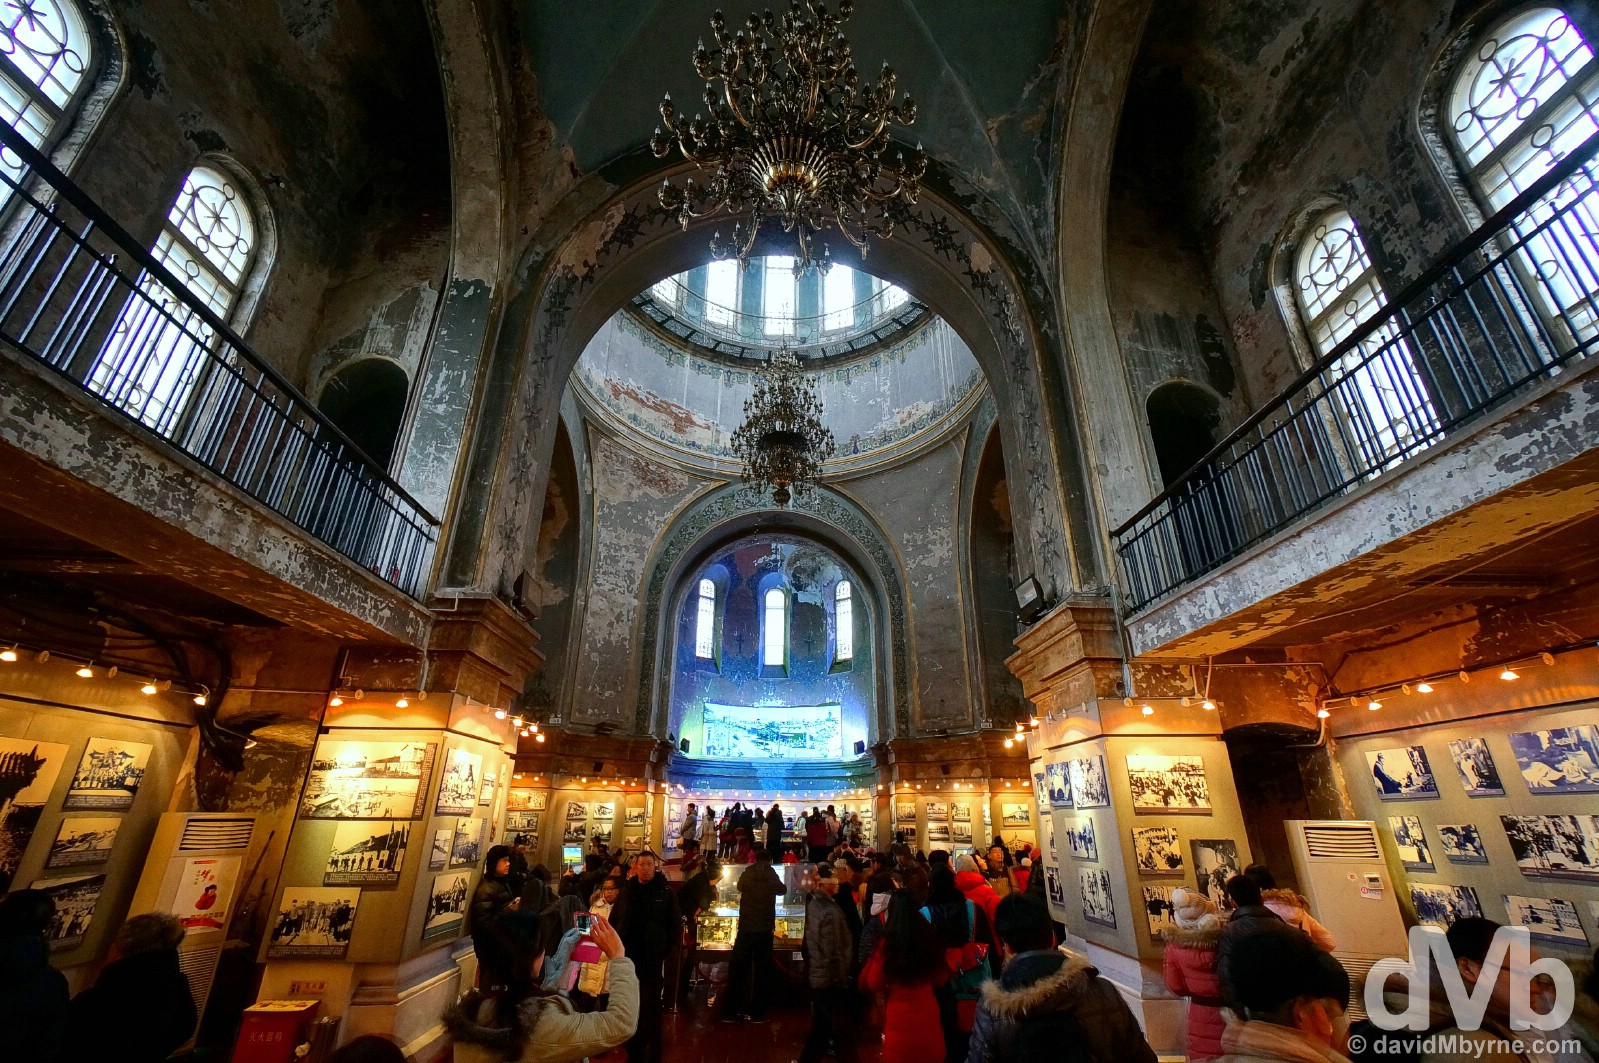 The photography exhibition of the Harbin Art & Architecture Centre inside the 1907 Cathedral of the Holy Wisdom of God, a.k.a. the Russian Orthodox cathedral or formally St. Sofia's, in central Harbin, China. February 6, 2015.